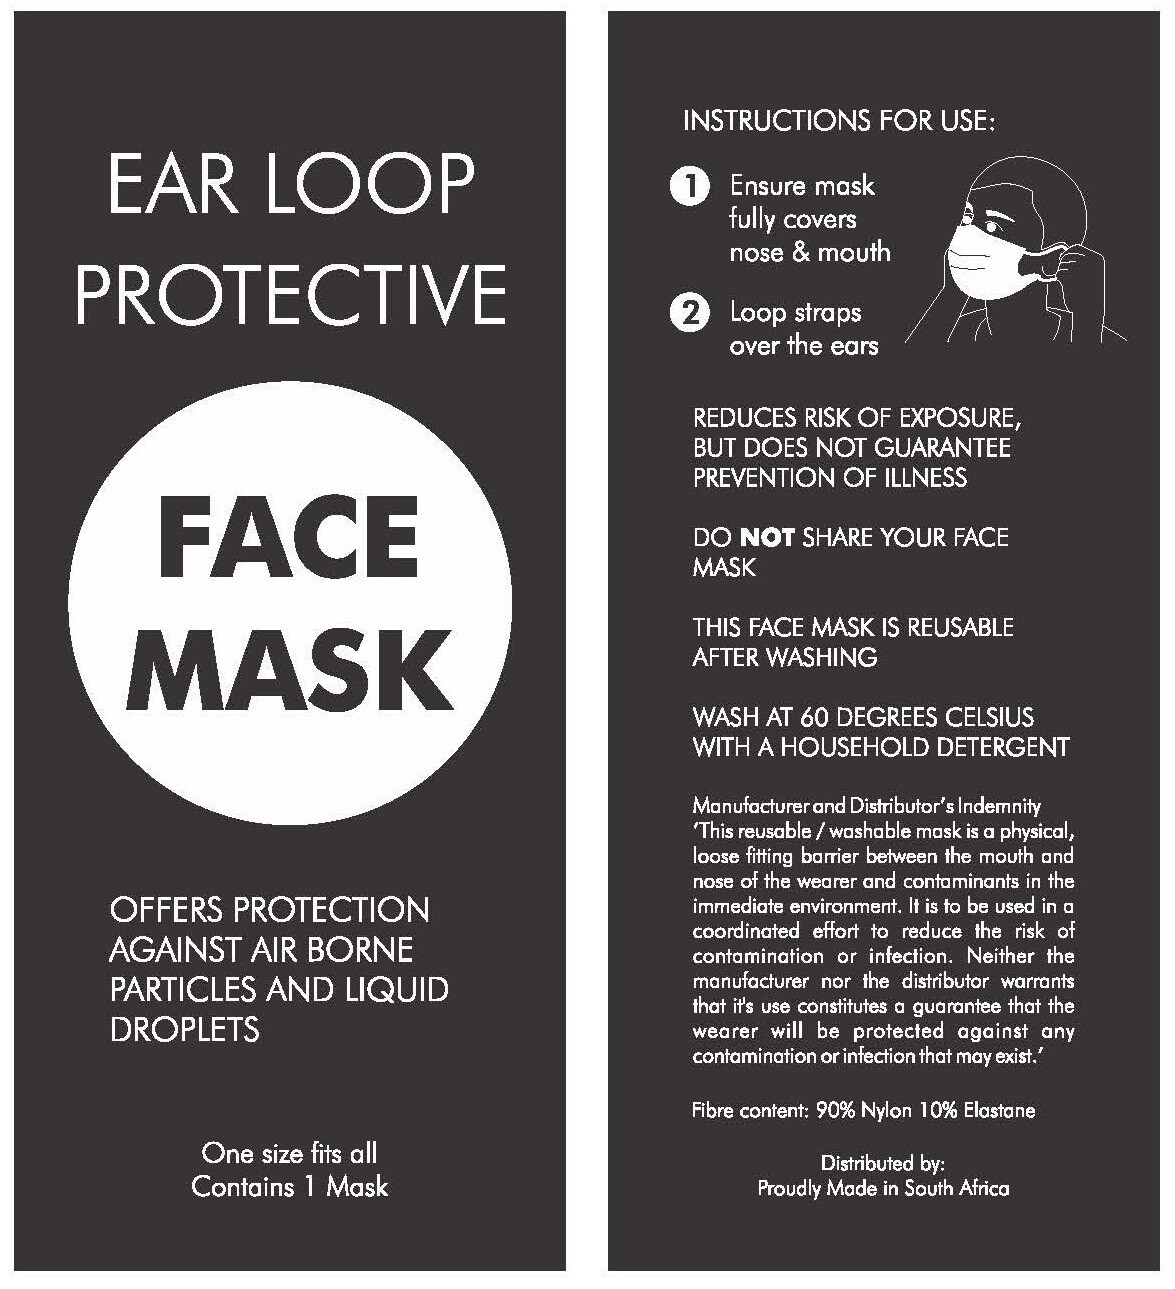 Protective Face Mask - 2,500 units - single mask per pack